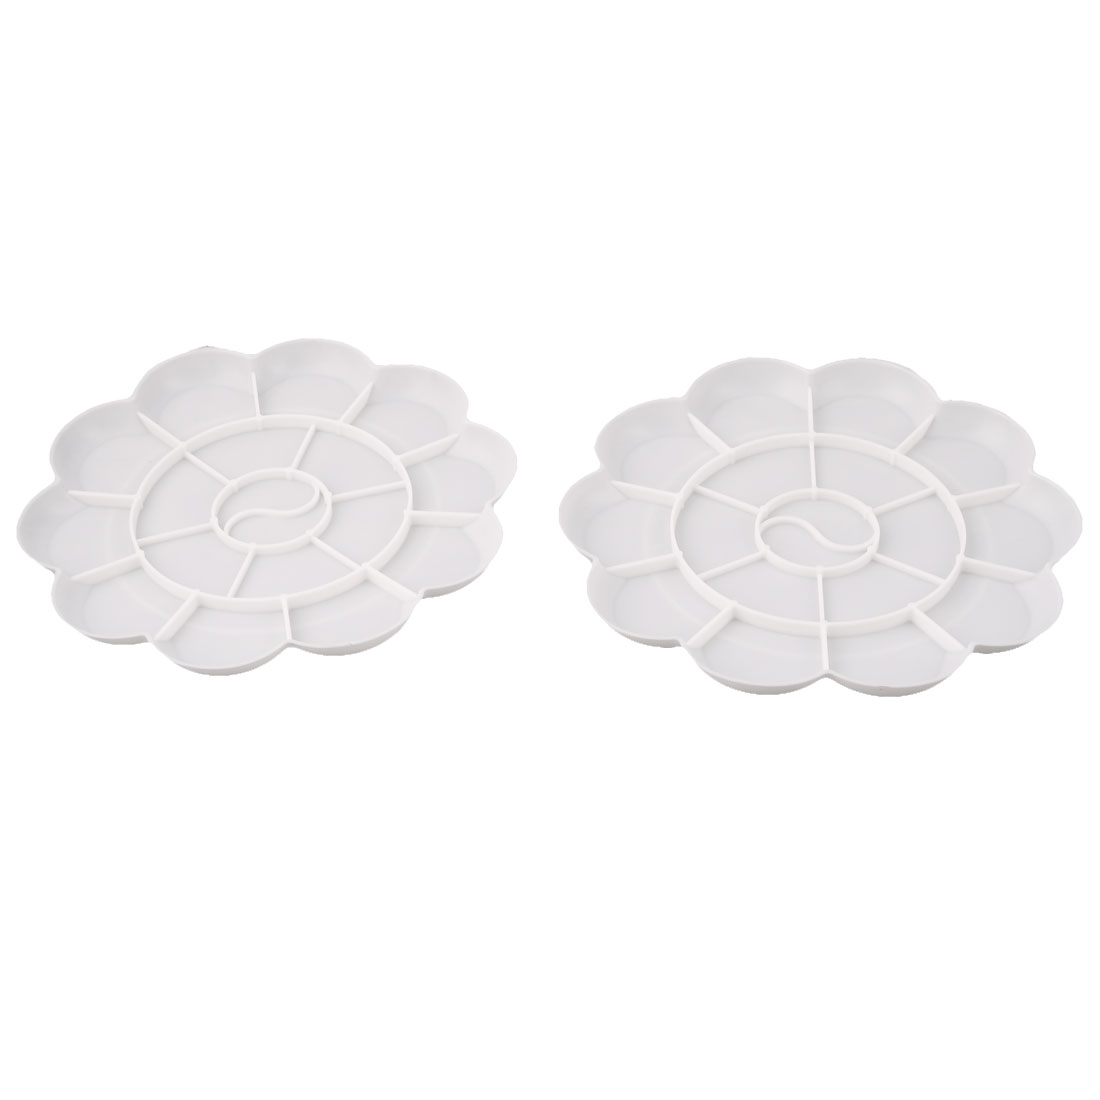 Plastic 18 Compartment Artist Paint Painting Mixing Palette Plate Tray White 2 Pcs